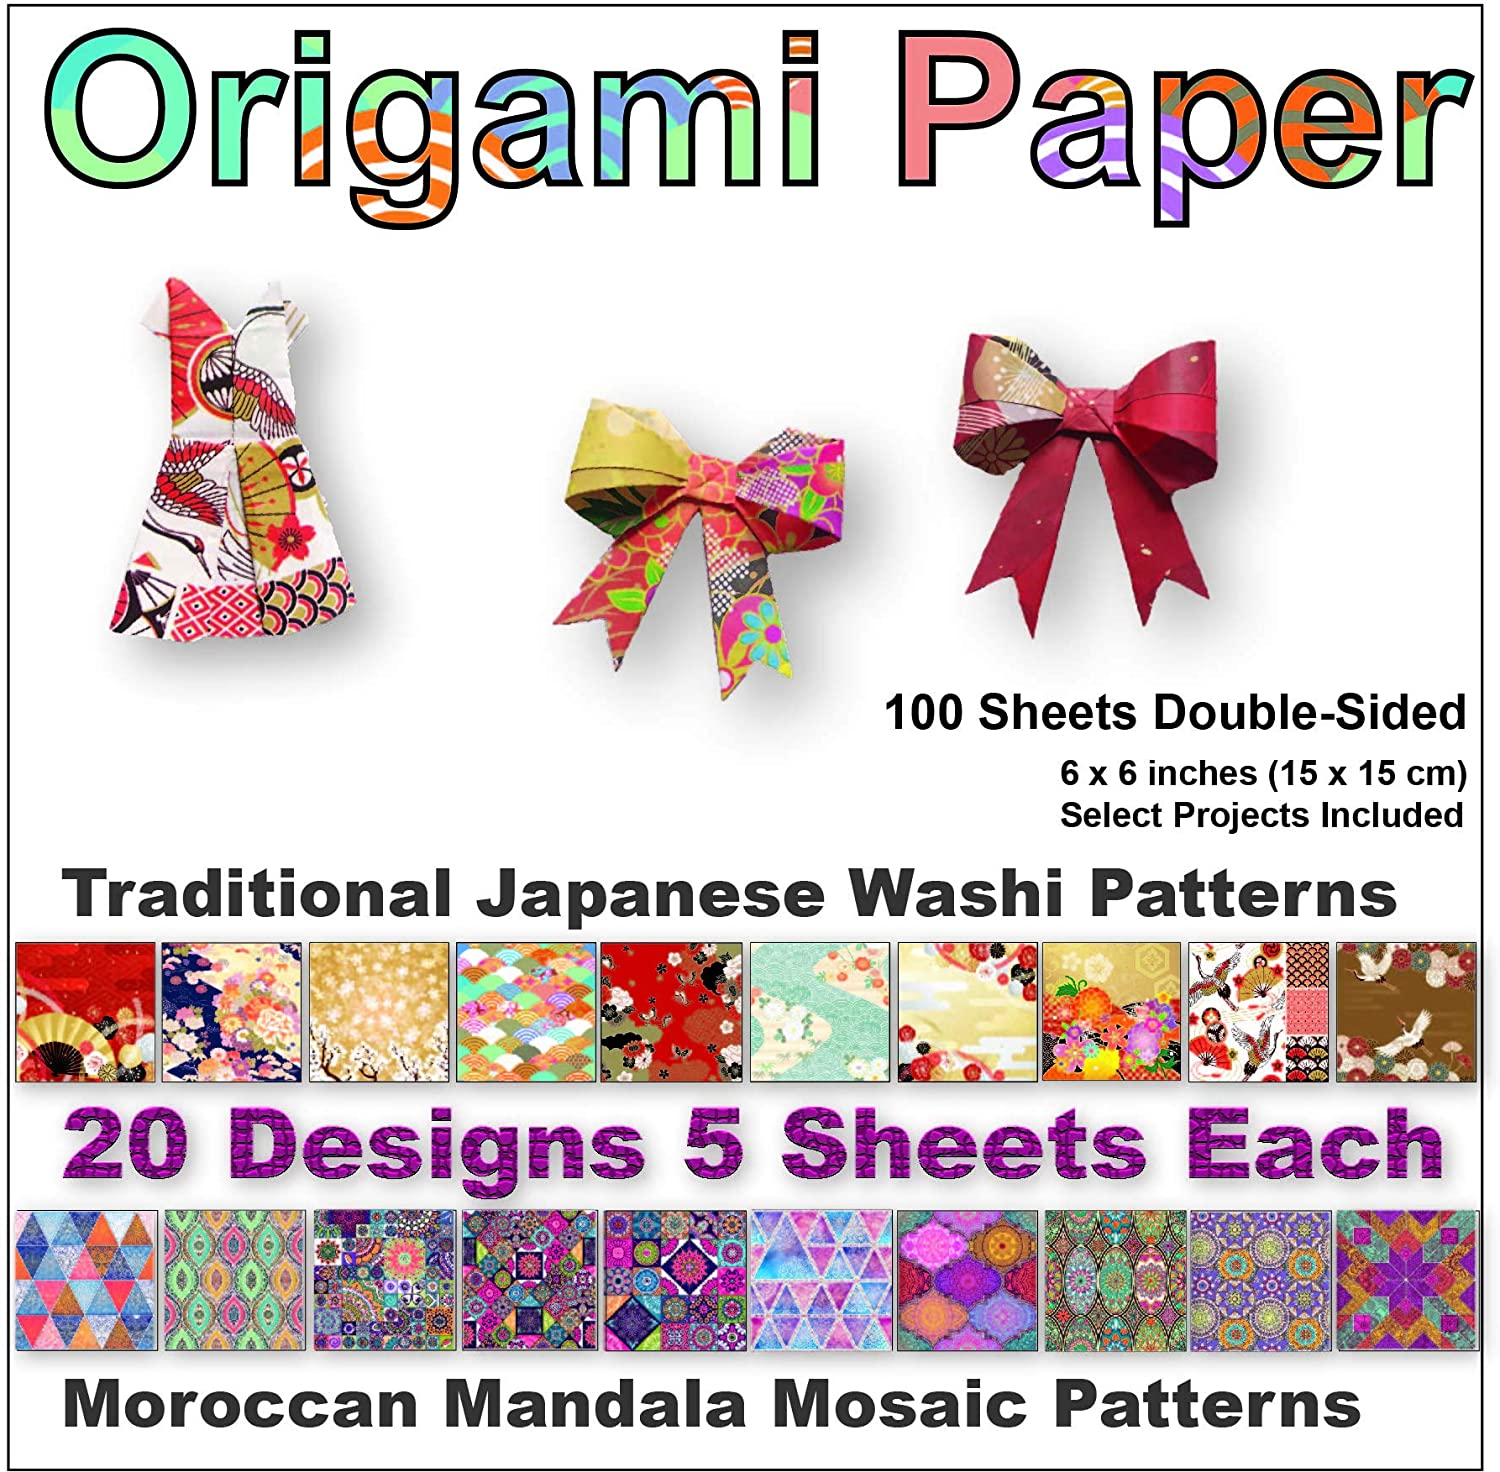 Premium Origami Paper of Japanese Washi and Moroccan Mosaic Patterns, 6x6 inch Double Sided 100 Sheets, 20 Beautiful Designs, Easy Folding for Paper Crafts, Decoration and Kids